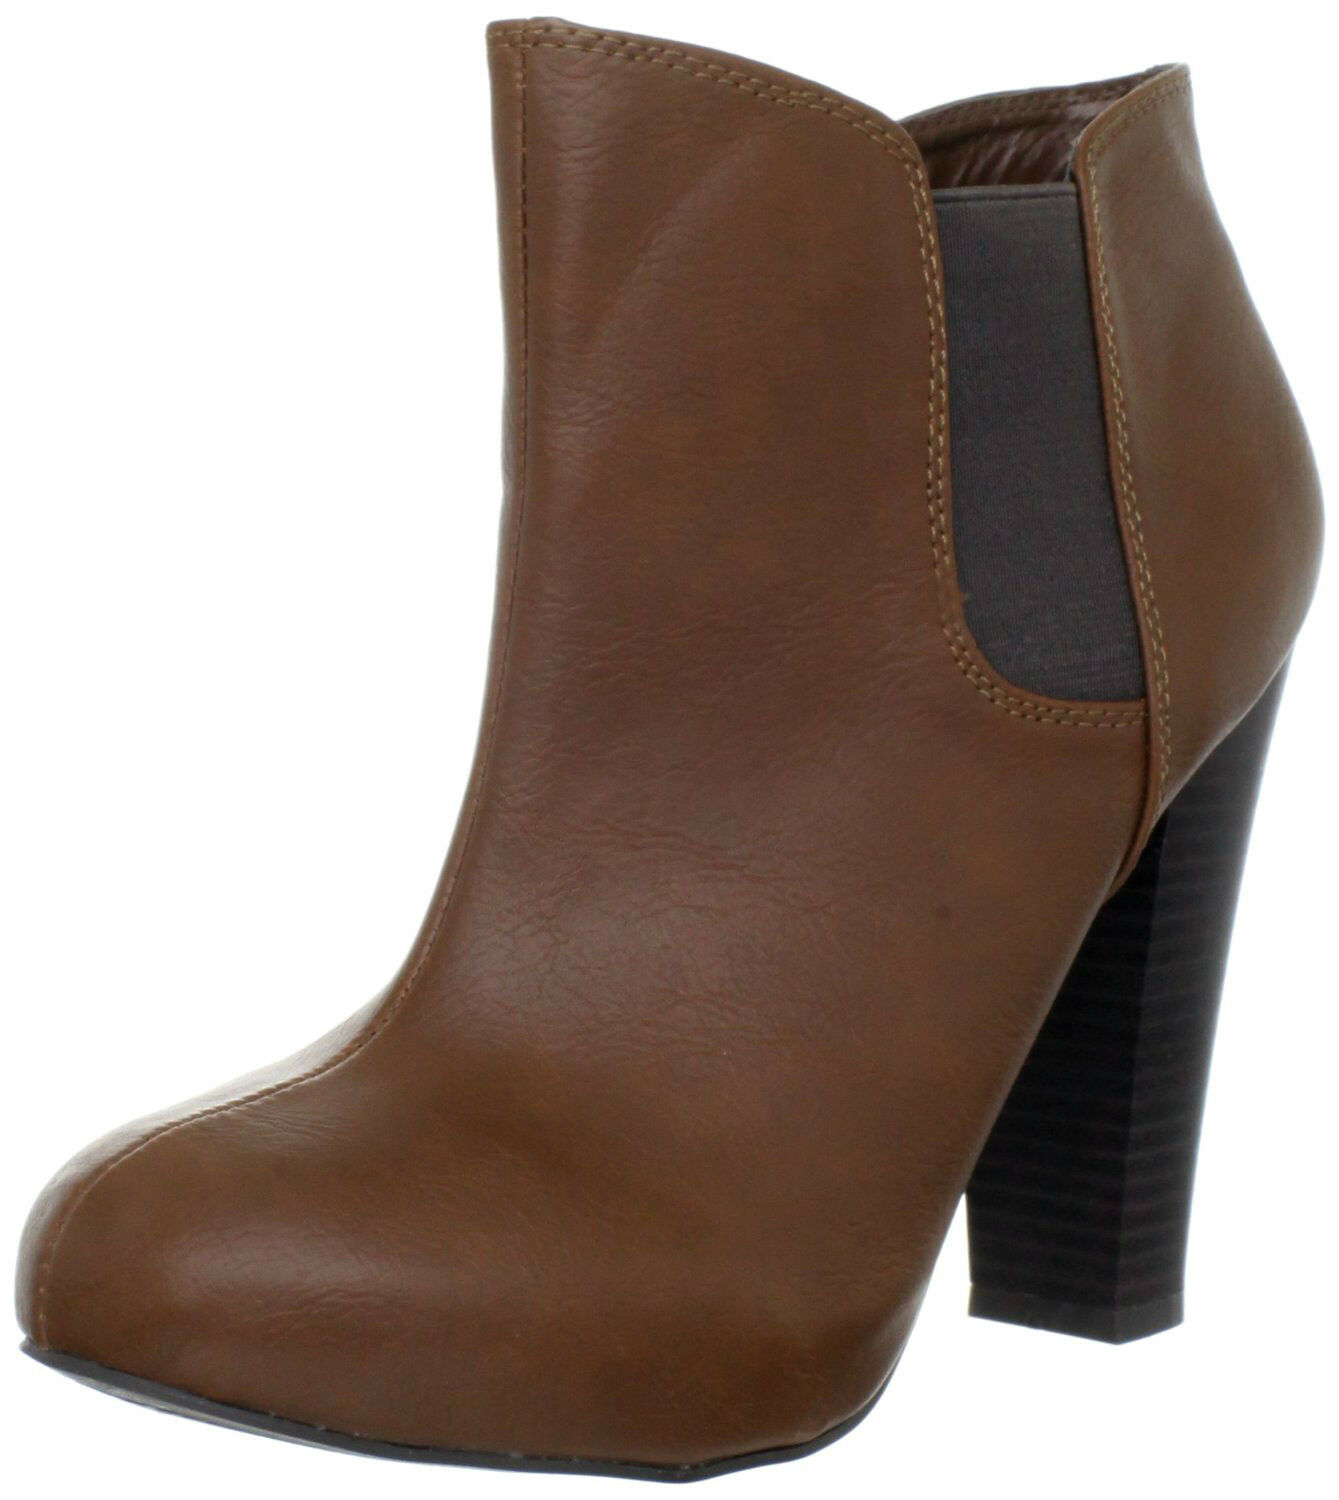 Madden Girl Zelouss ankle boot 4.5